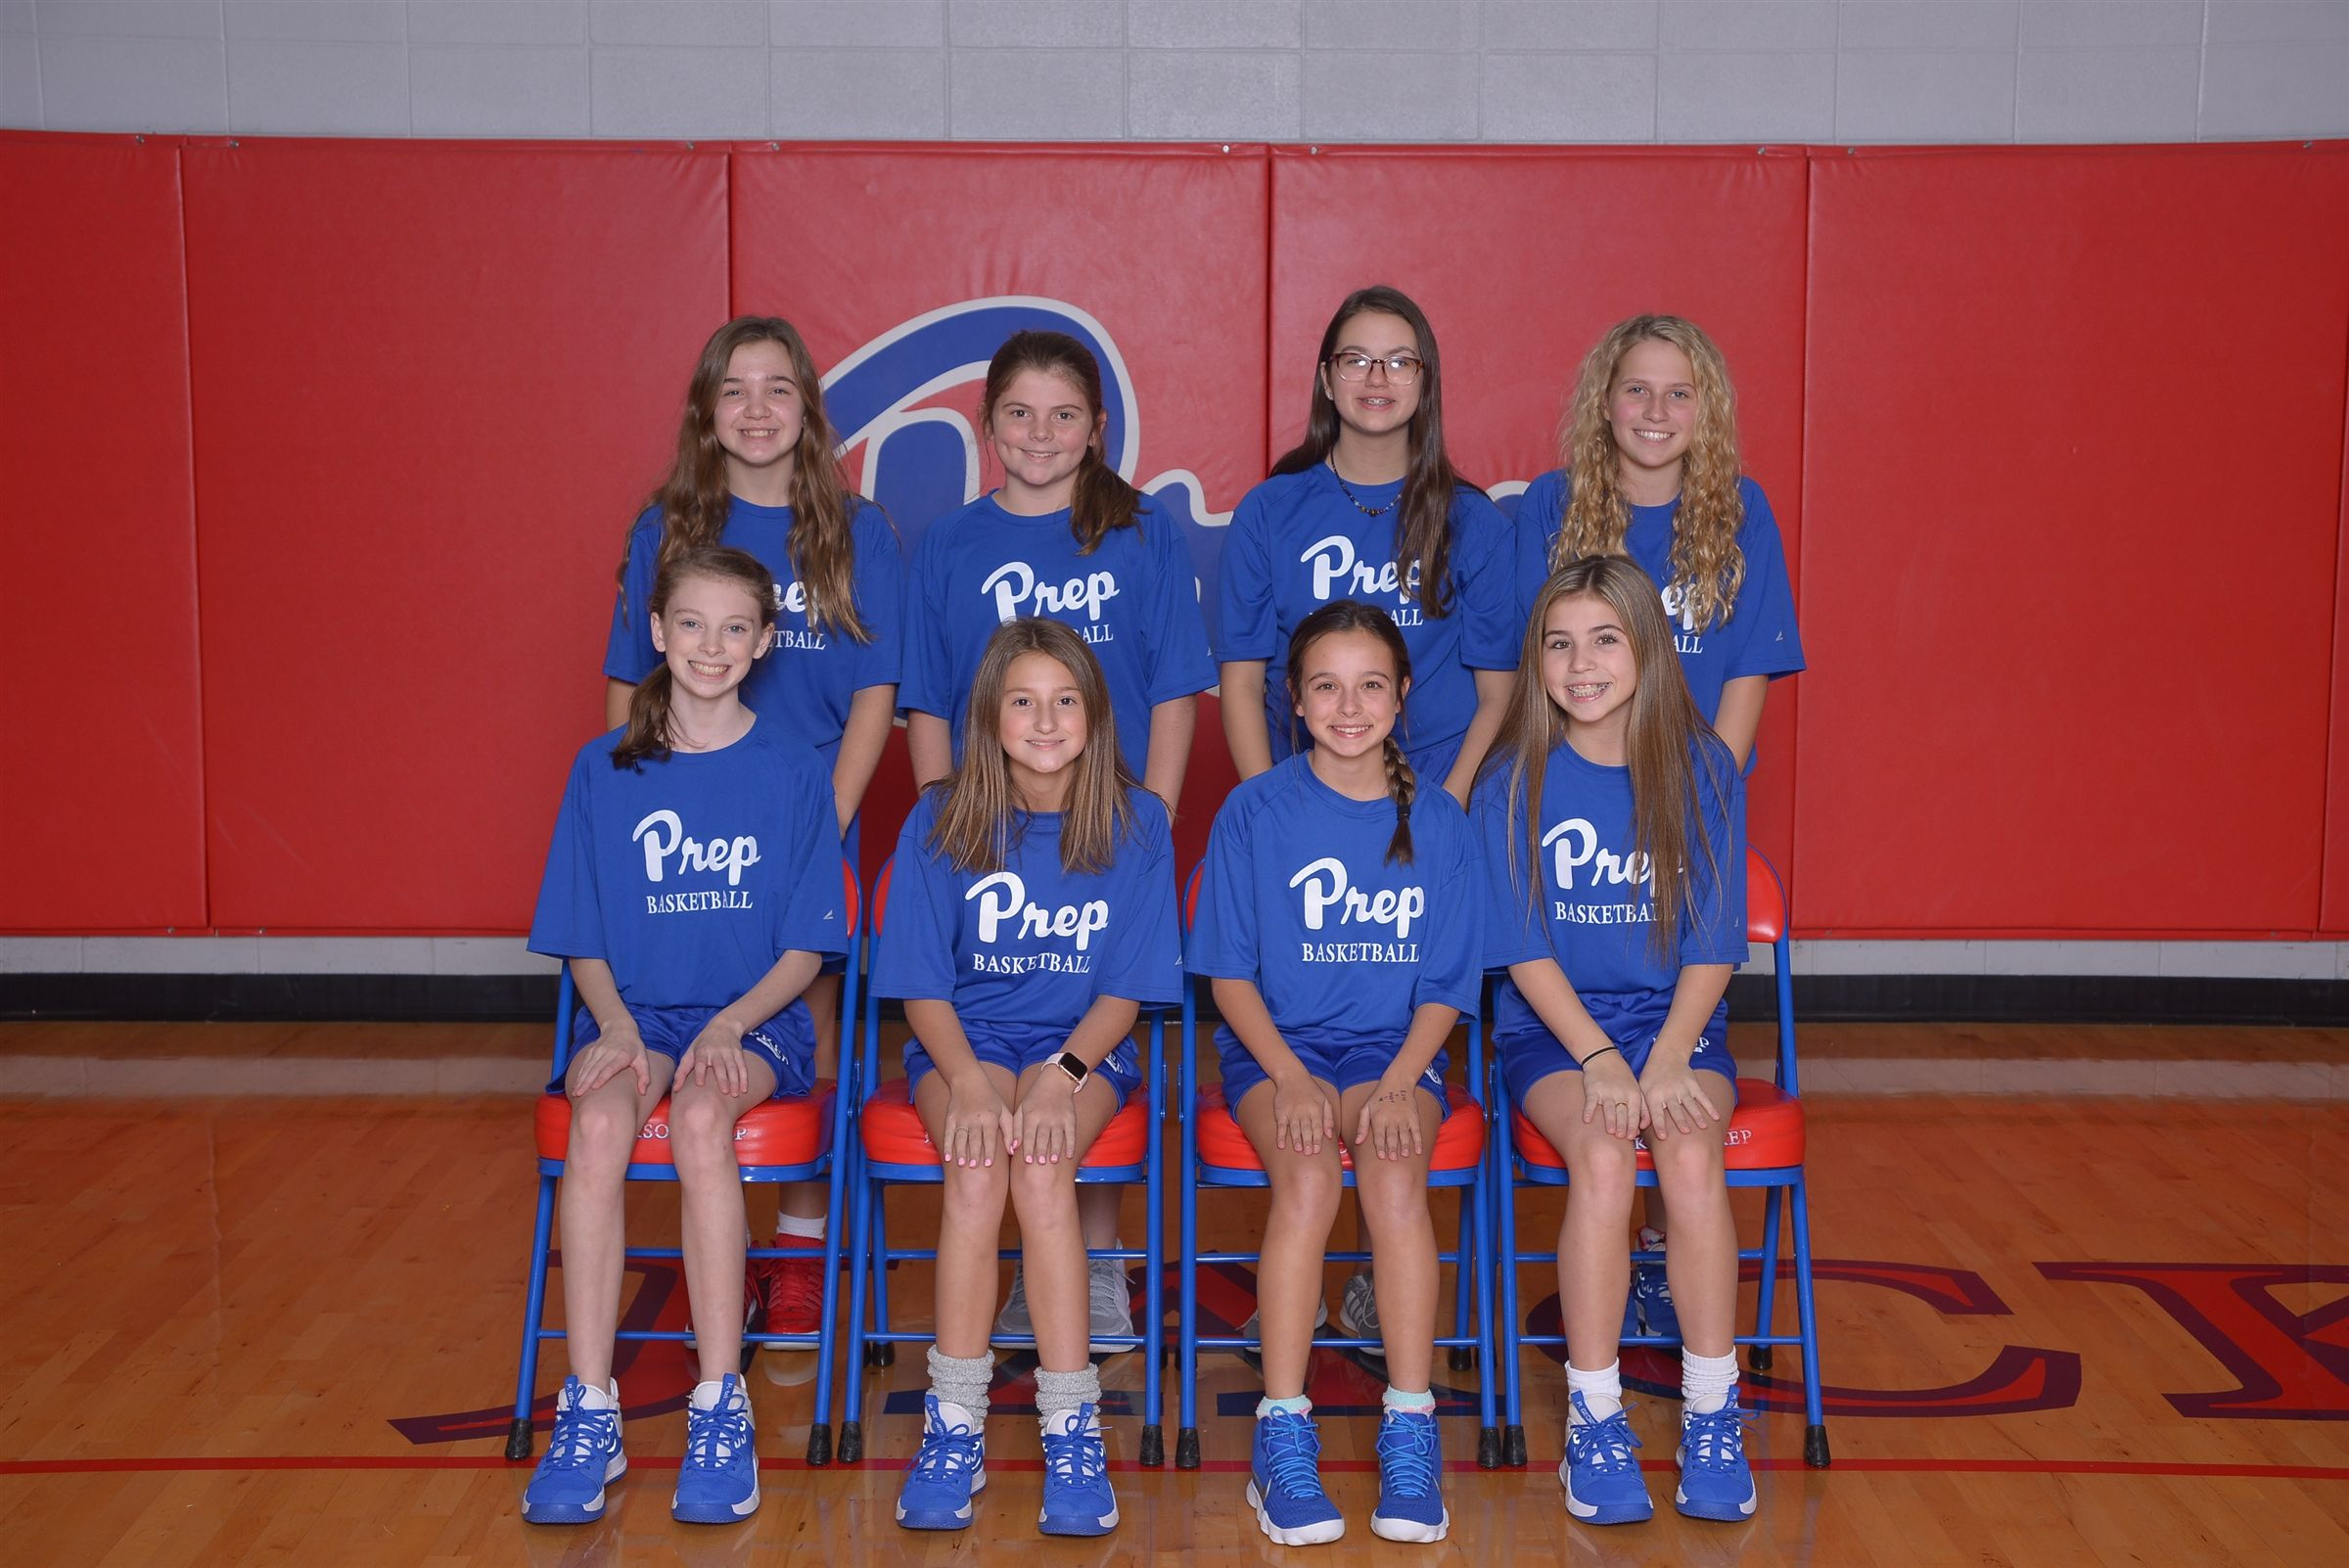 Back row (l to r): Meredith Hawkins, Sarah McKinley, Haley Yelverton, Ella Kincaid  Front row (l to r): McClain Morgan, Lucy Tyra, Abby Duncan, Sailor Hart Simpson (not pictured: Ellie Hederman)